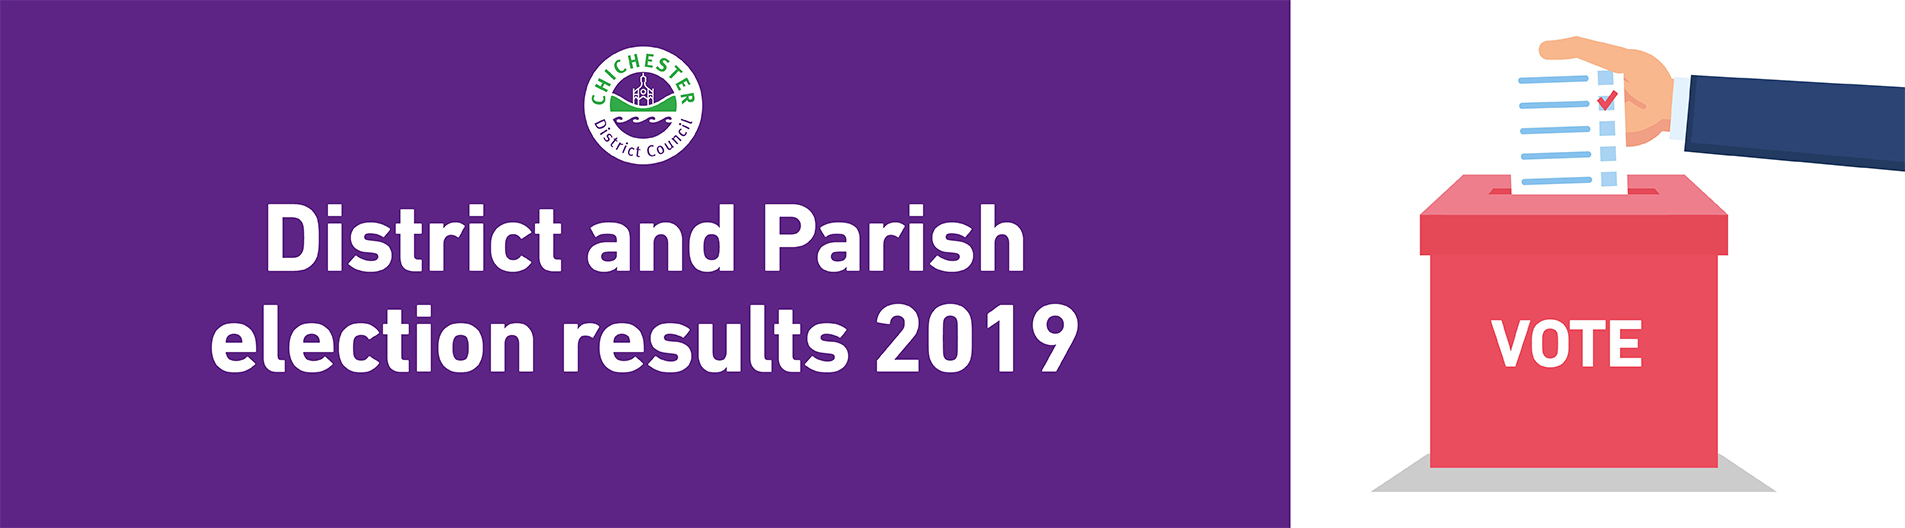 District and Parish Election Results 2019